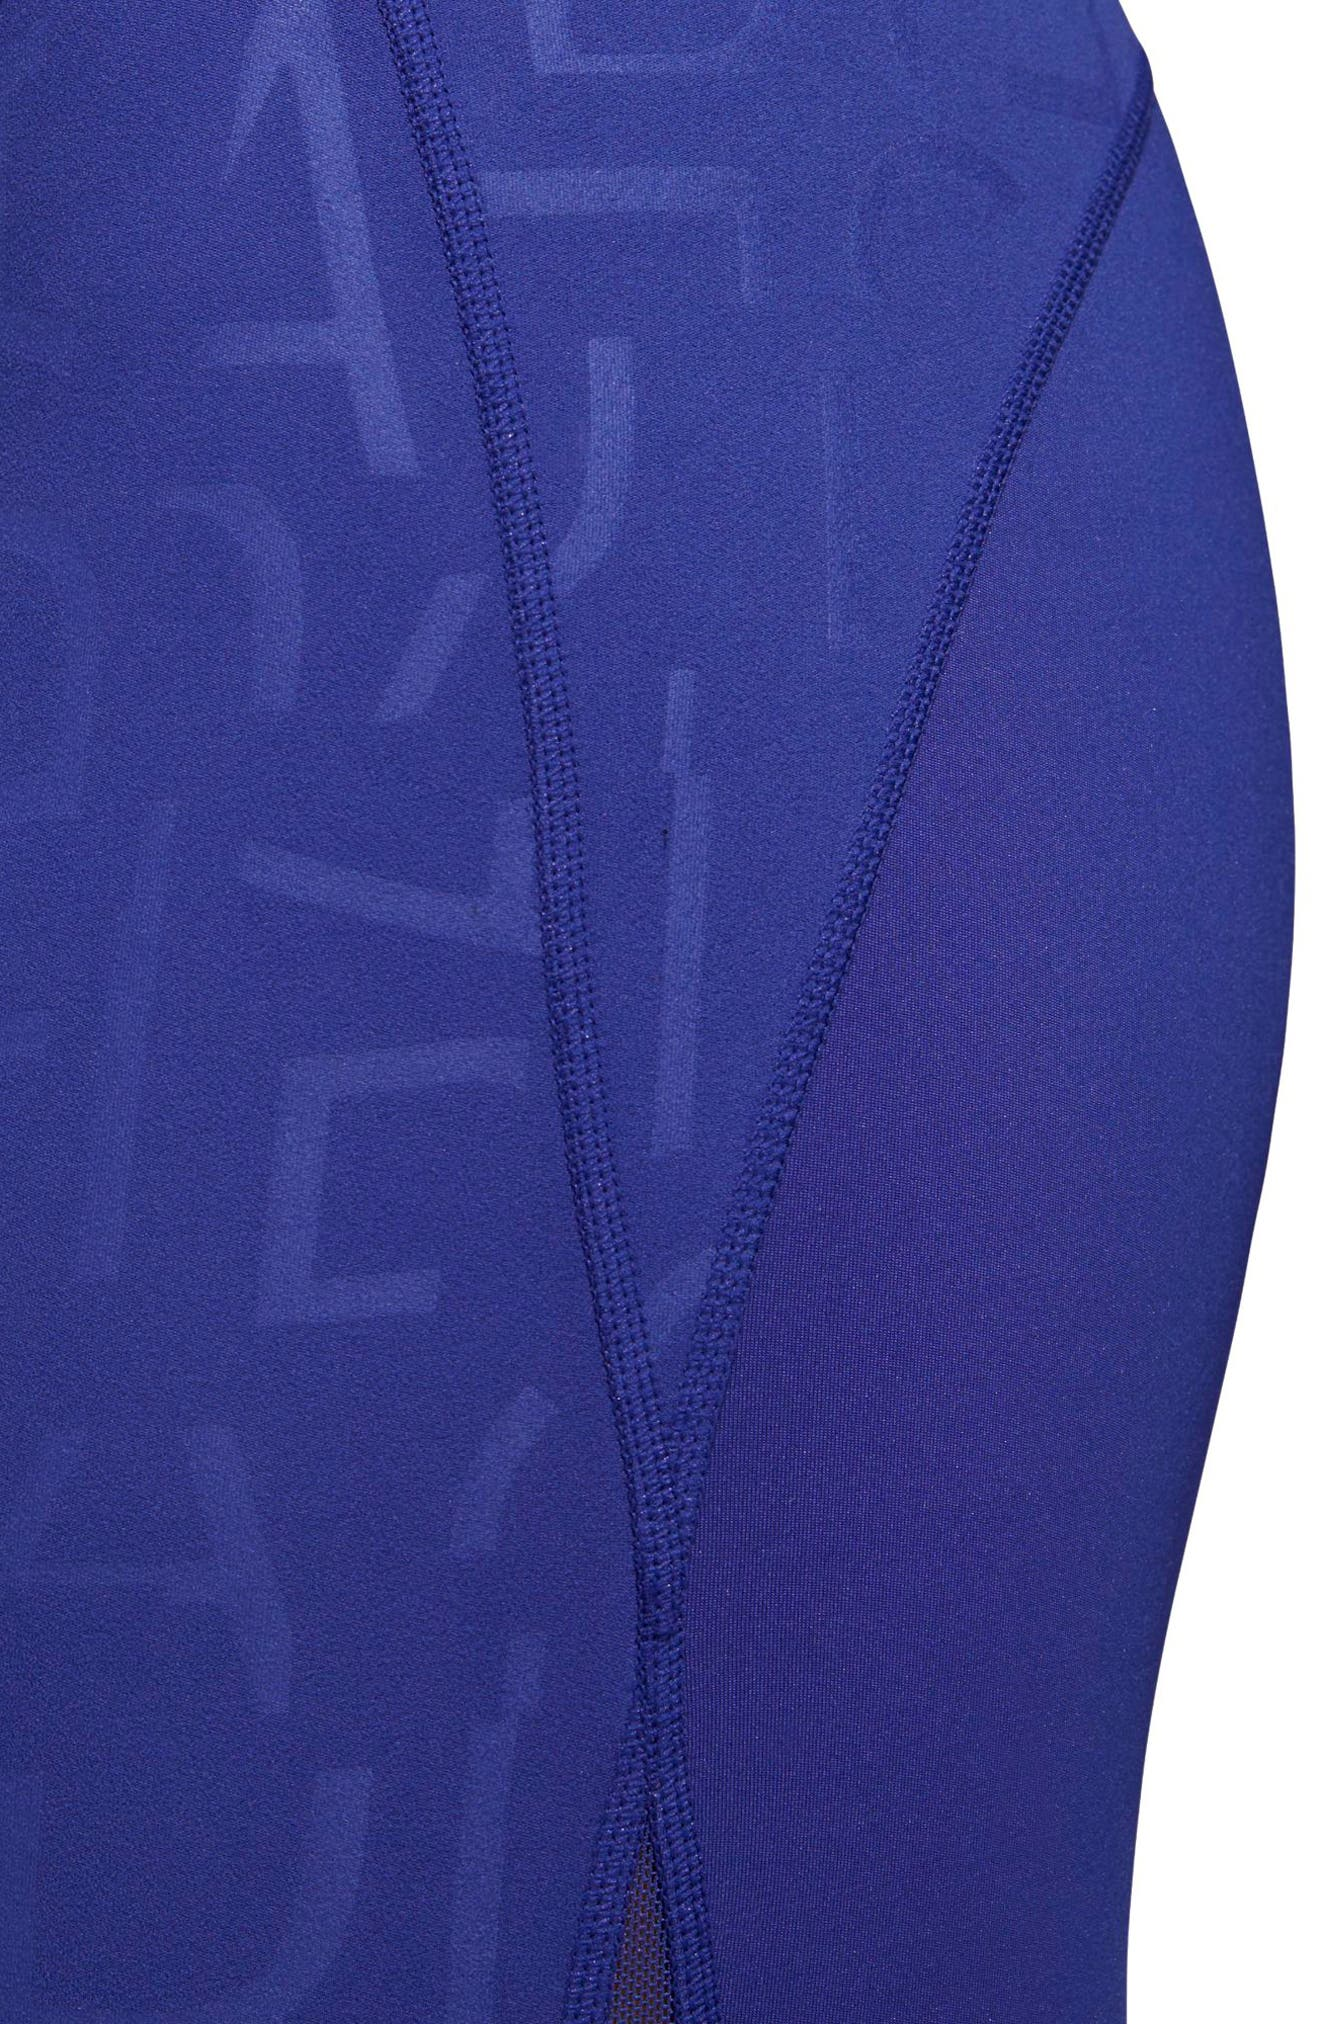 Adihack Crop Tights,                             Alternate thumbnail 4, color,                             500